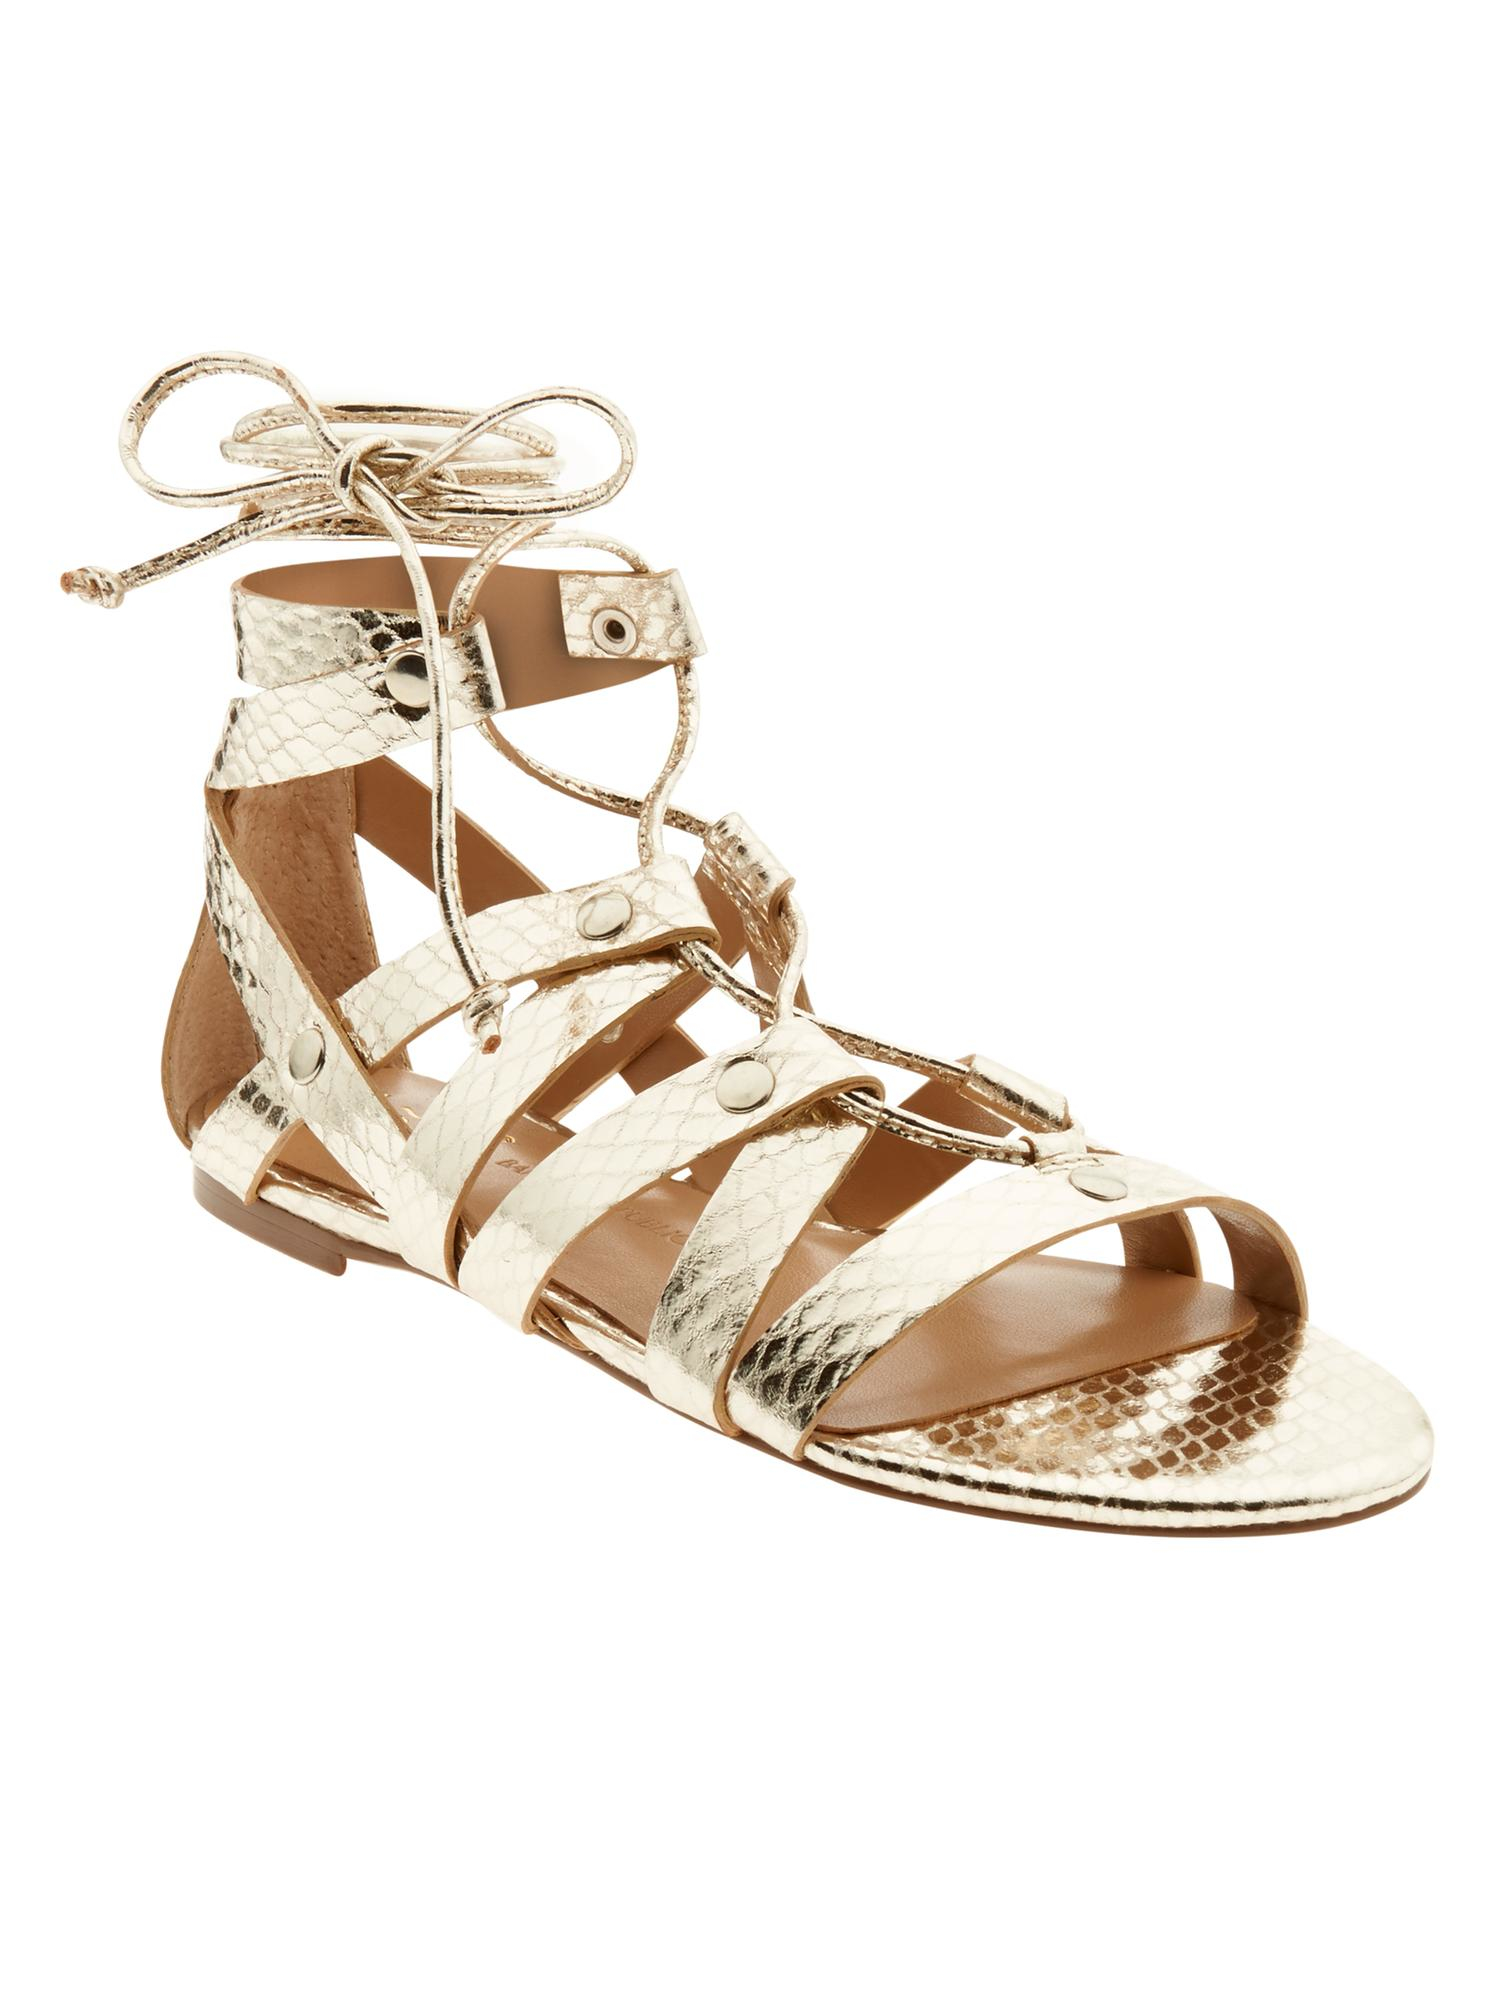 bc501d45f03 Lyst - Banana Republic Telly Lace-up Sandal in Metallic